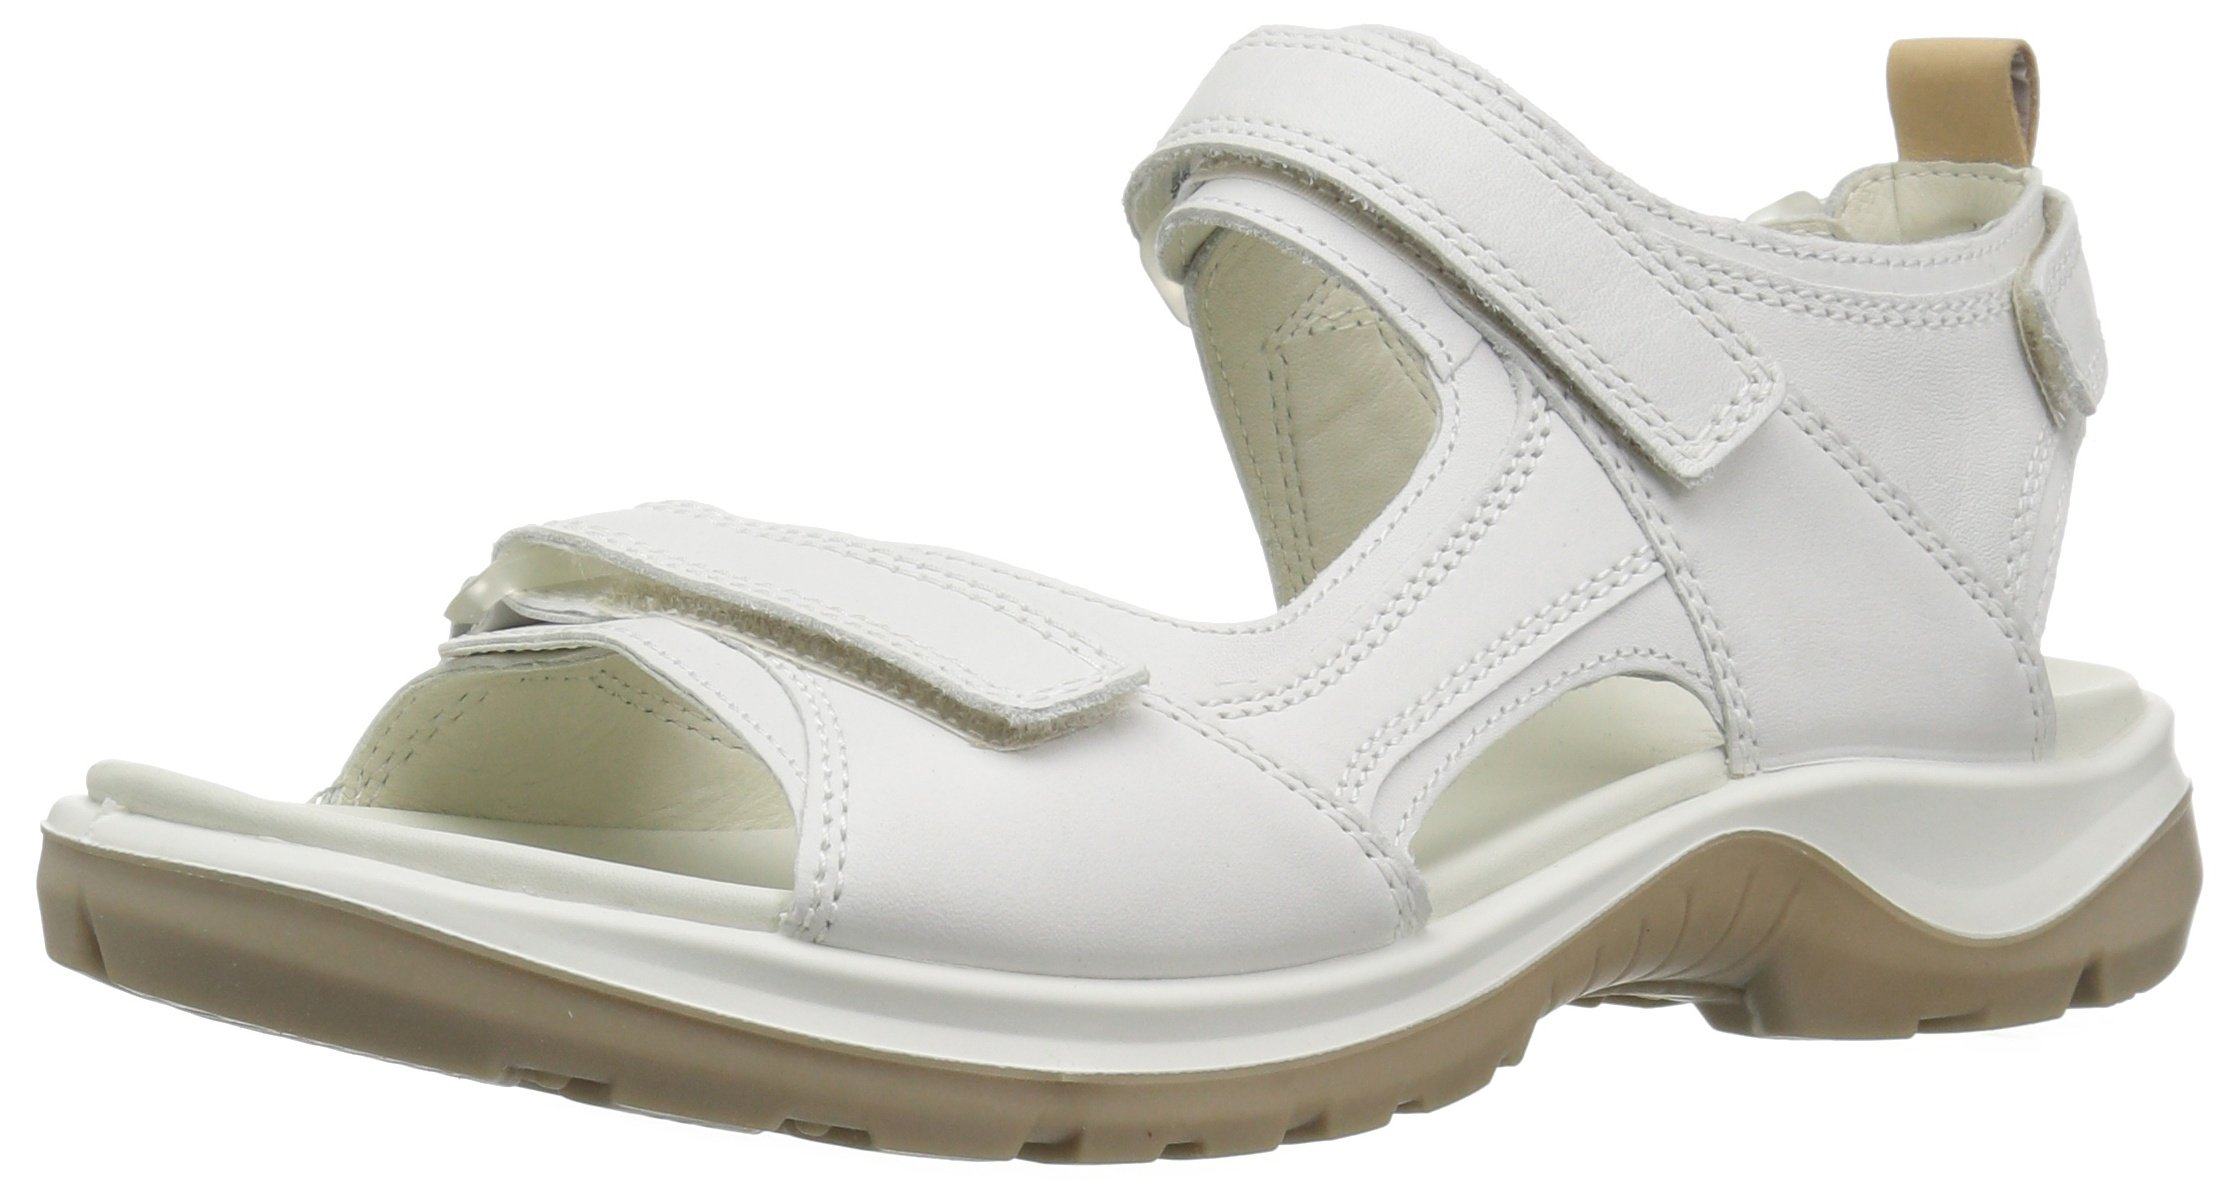 43033ed857 Best Rated in Women's Athletic & Outdoor Sandals & Slides & Helpful ...